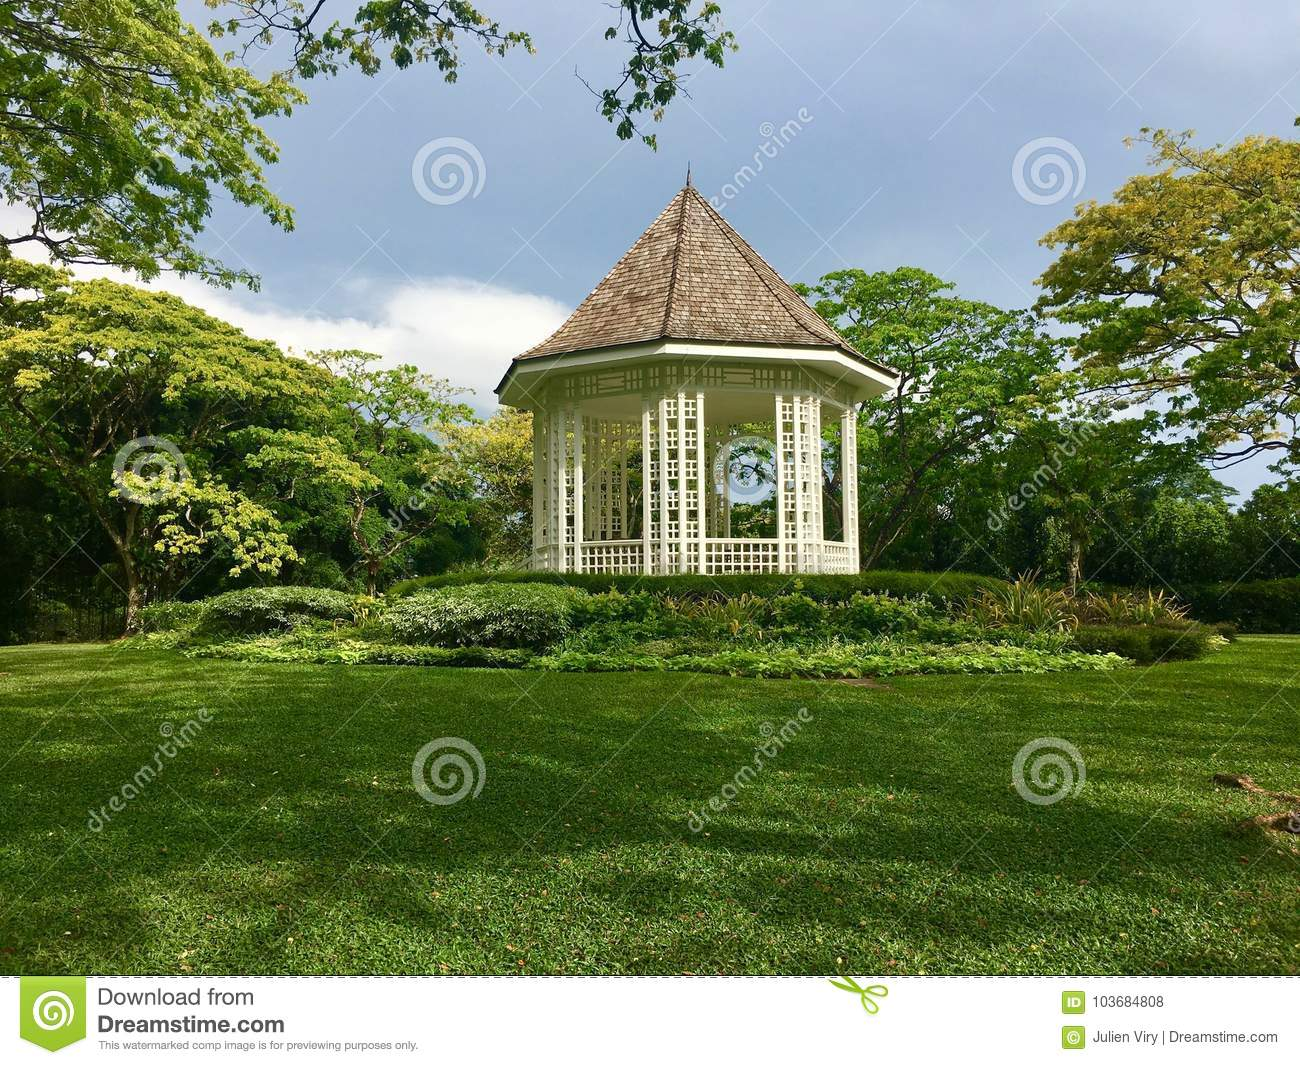 White Bandstand or Gazebo at the Botanic Gardens Singapore